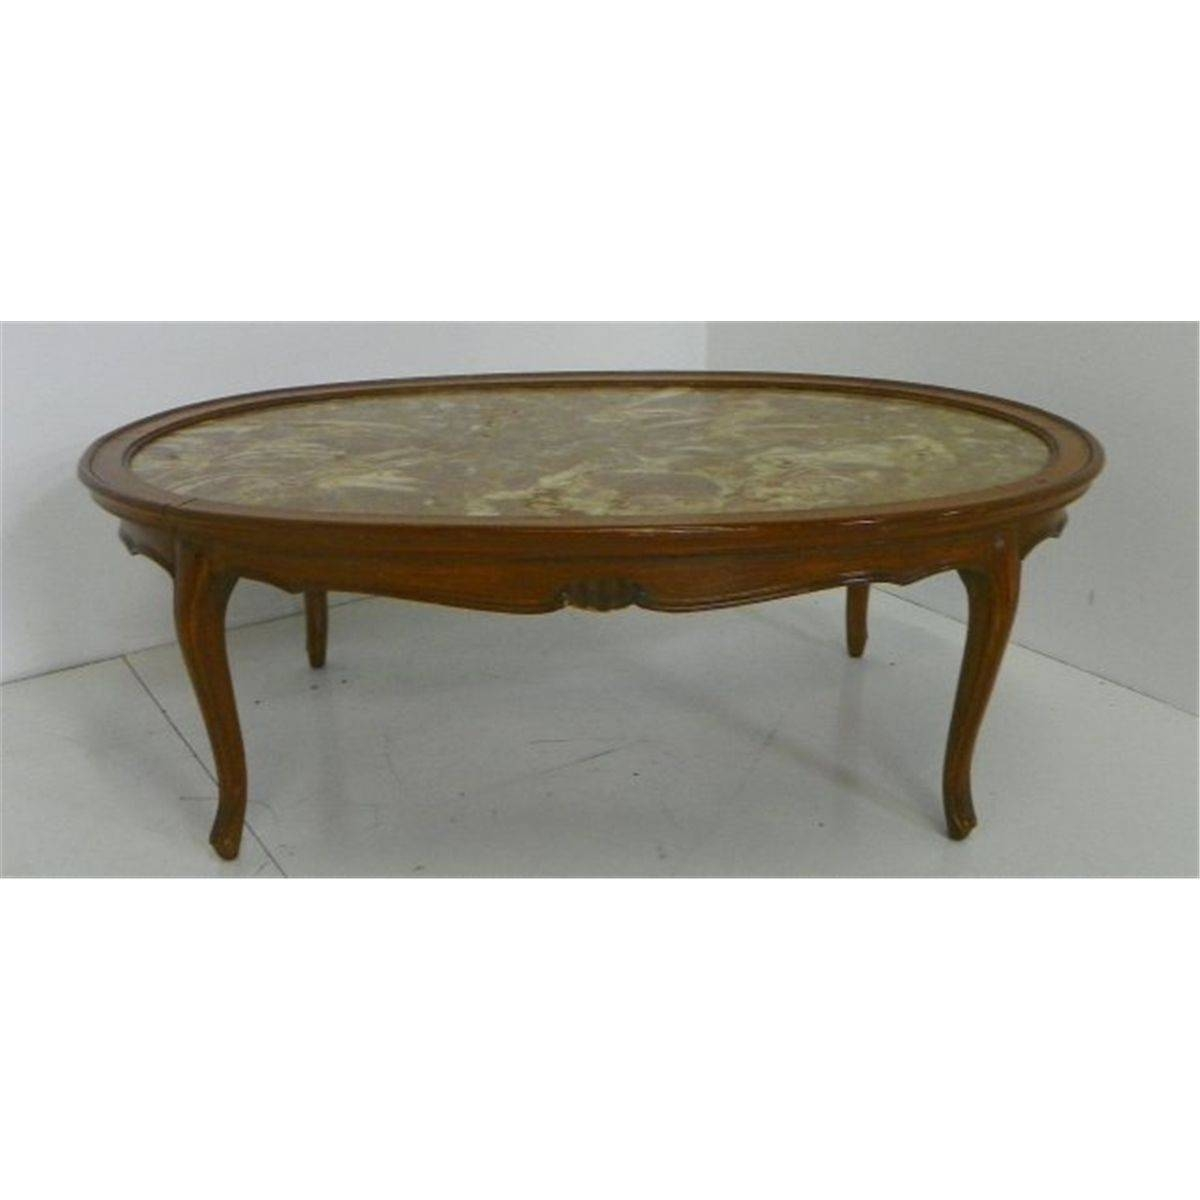 Coffee Table: Astonishing French Country Coffee Table Ideas French inside French Country Coffee Tables (Image 11 of 30)